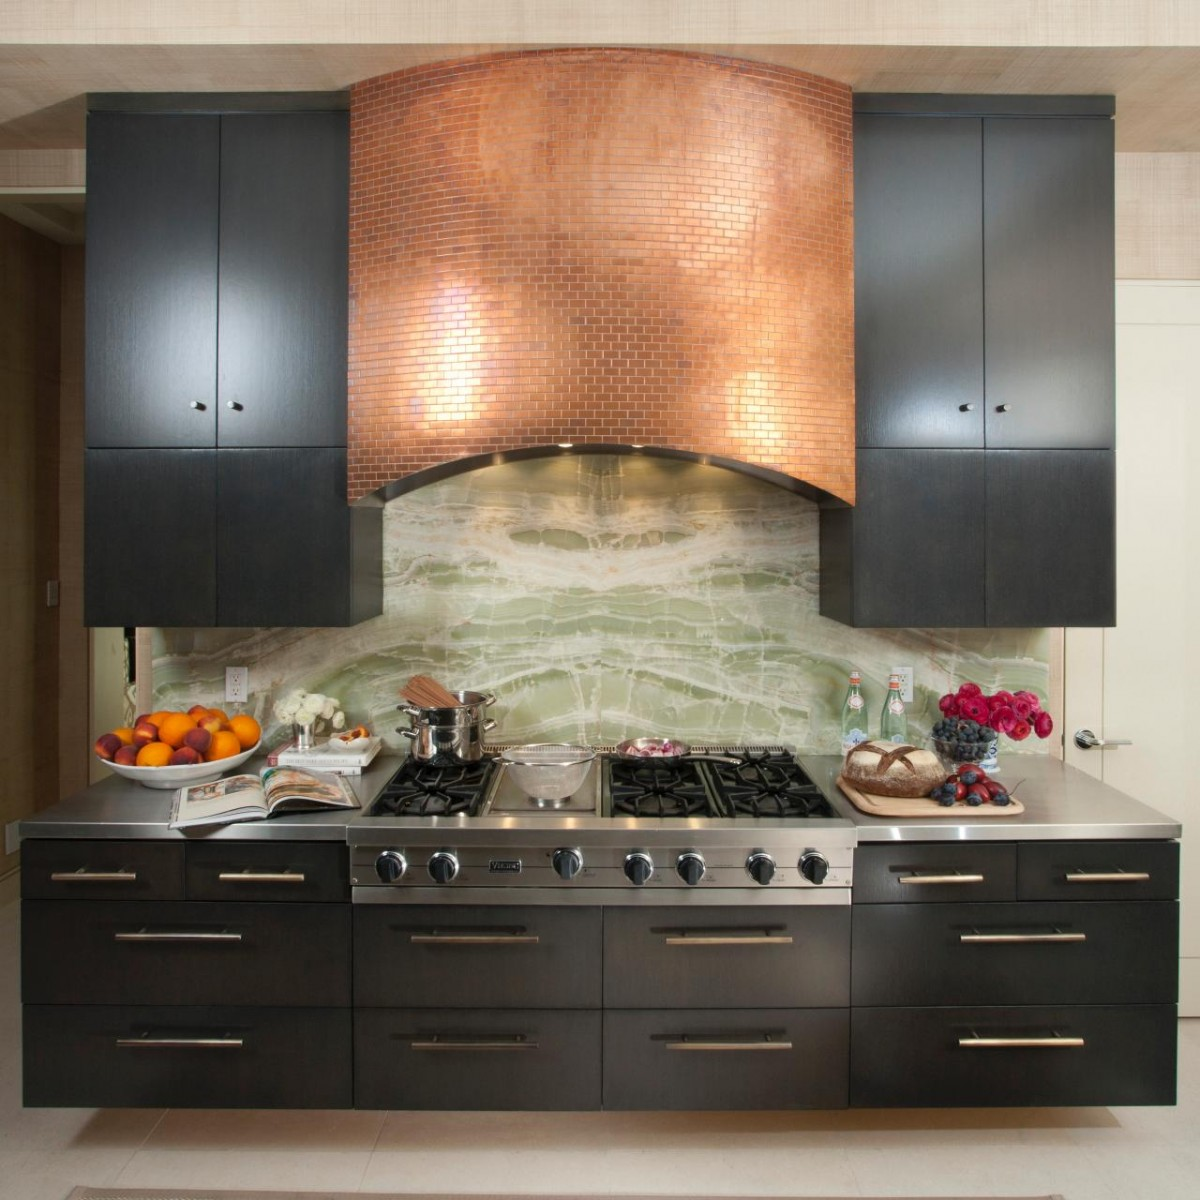 types of kitchen exhaust fans faucet diverter 4 range hoods to transform your